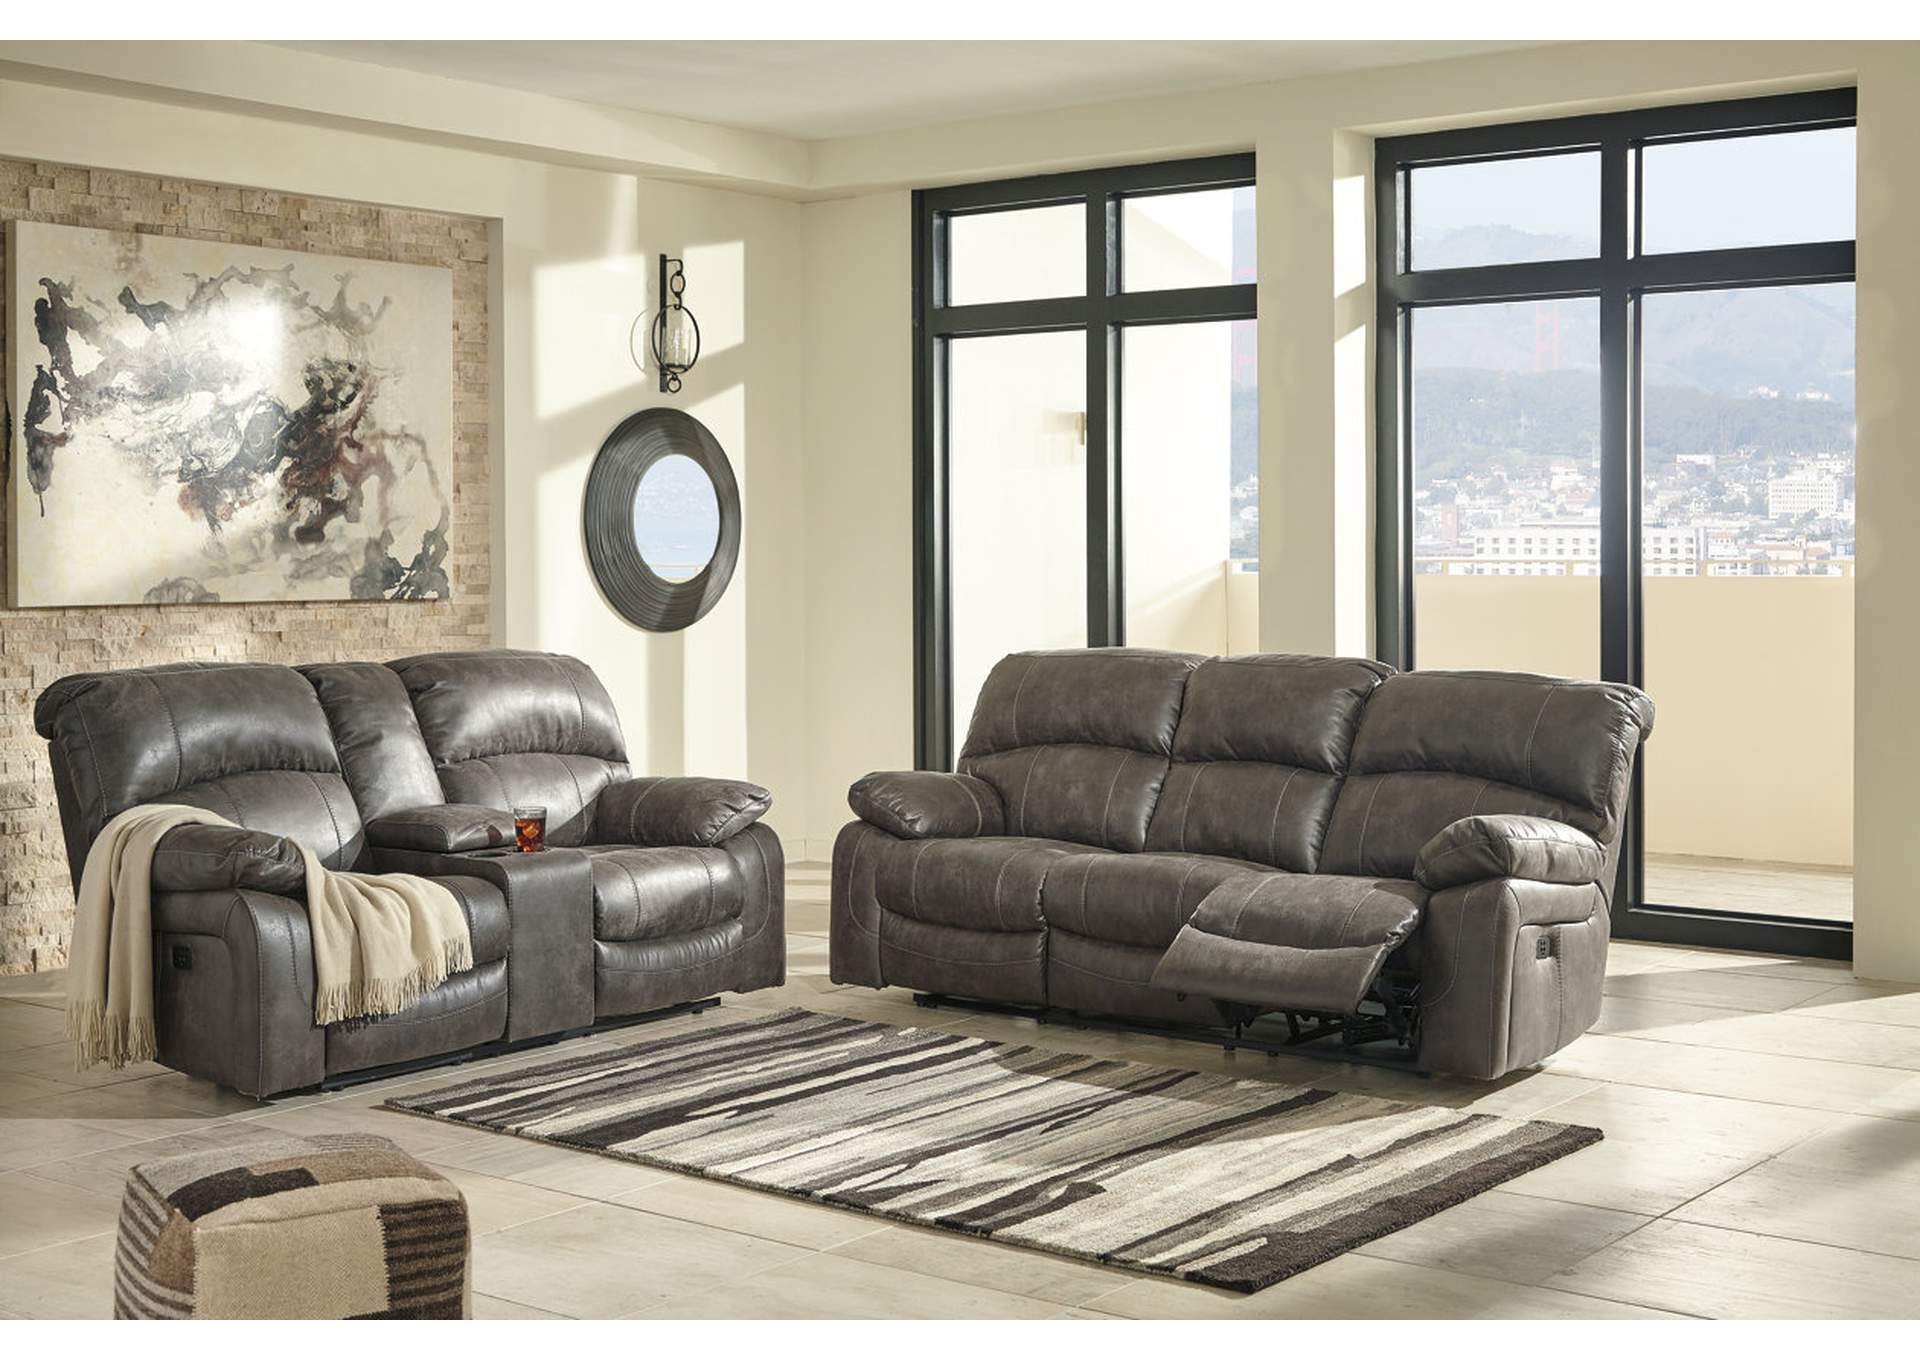 Dunwell Steel Power Reclining Sofa and Loveseat w/Adjustable Headrest,Signature Design By Ashley